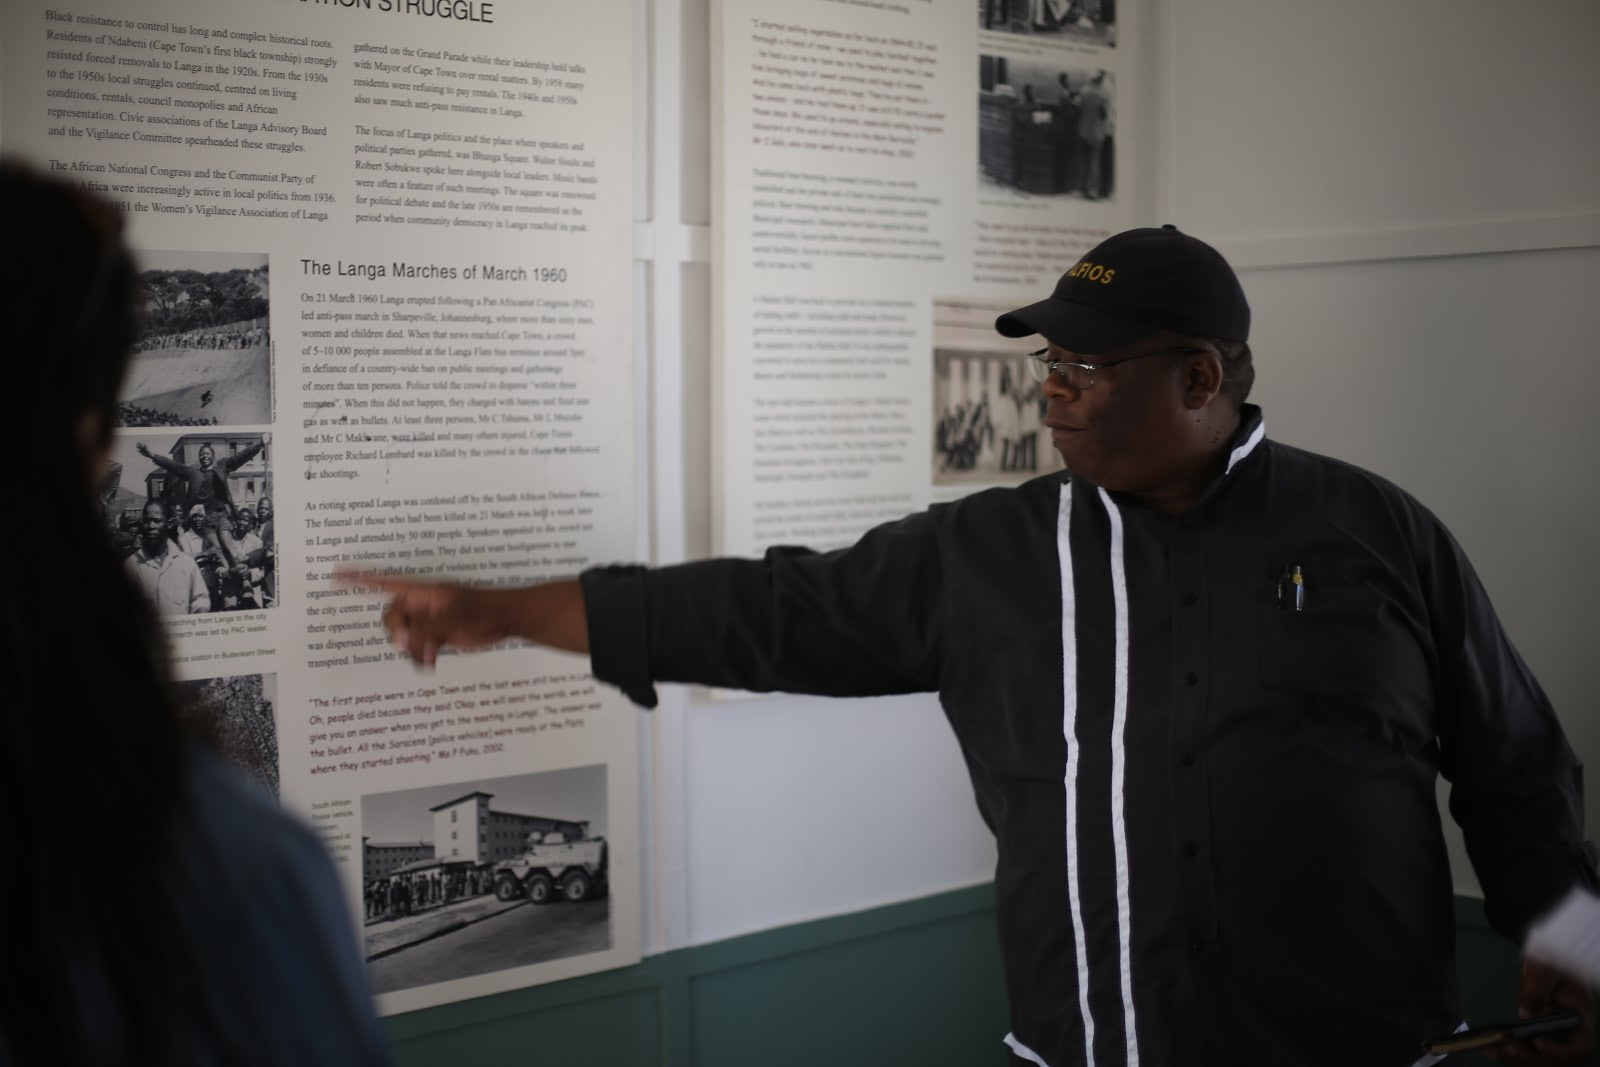 Alfred-Magwaca-host-at-the-Langa-Pass-Museum-on-the-Revolution-Route-Cape-Town-PIC-BY-ANDREW-BRAUTESETH-COURTESY-CAPE-TOWN-TOURISM.jpg